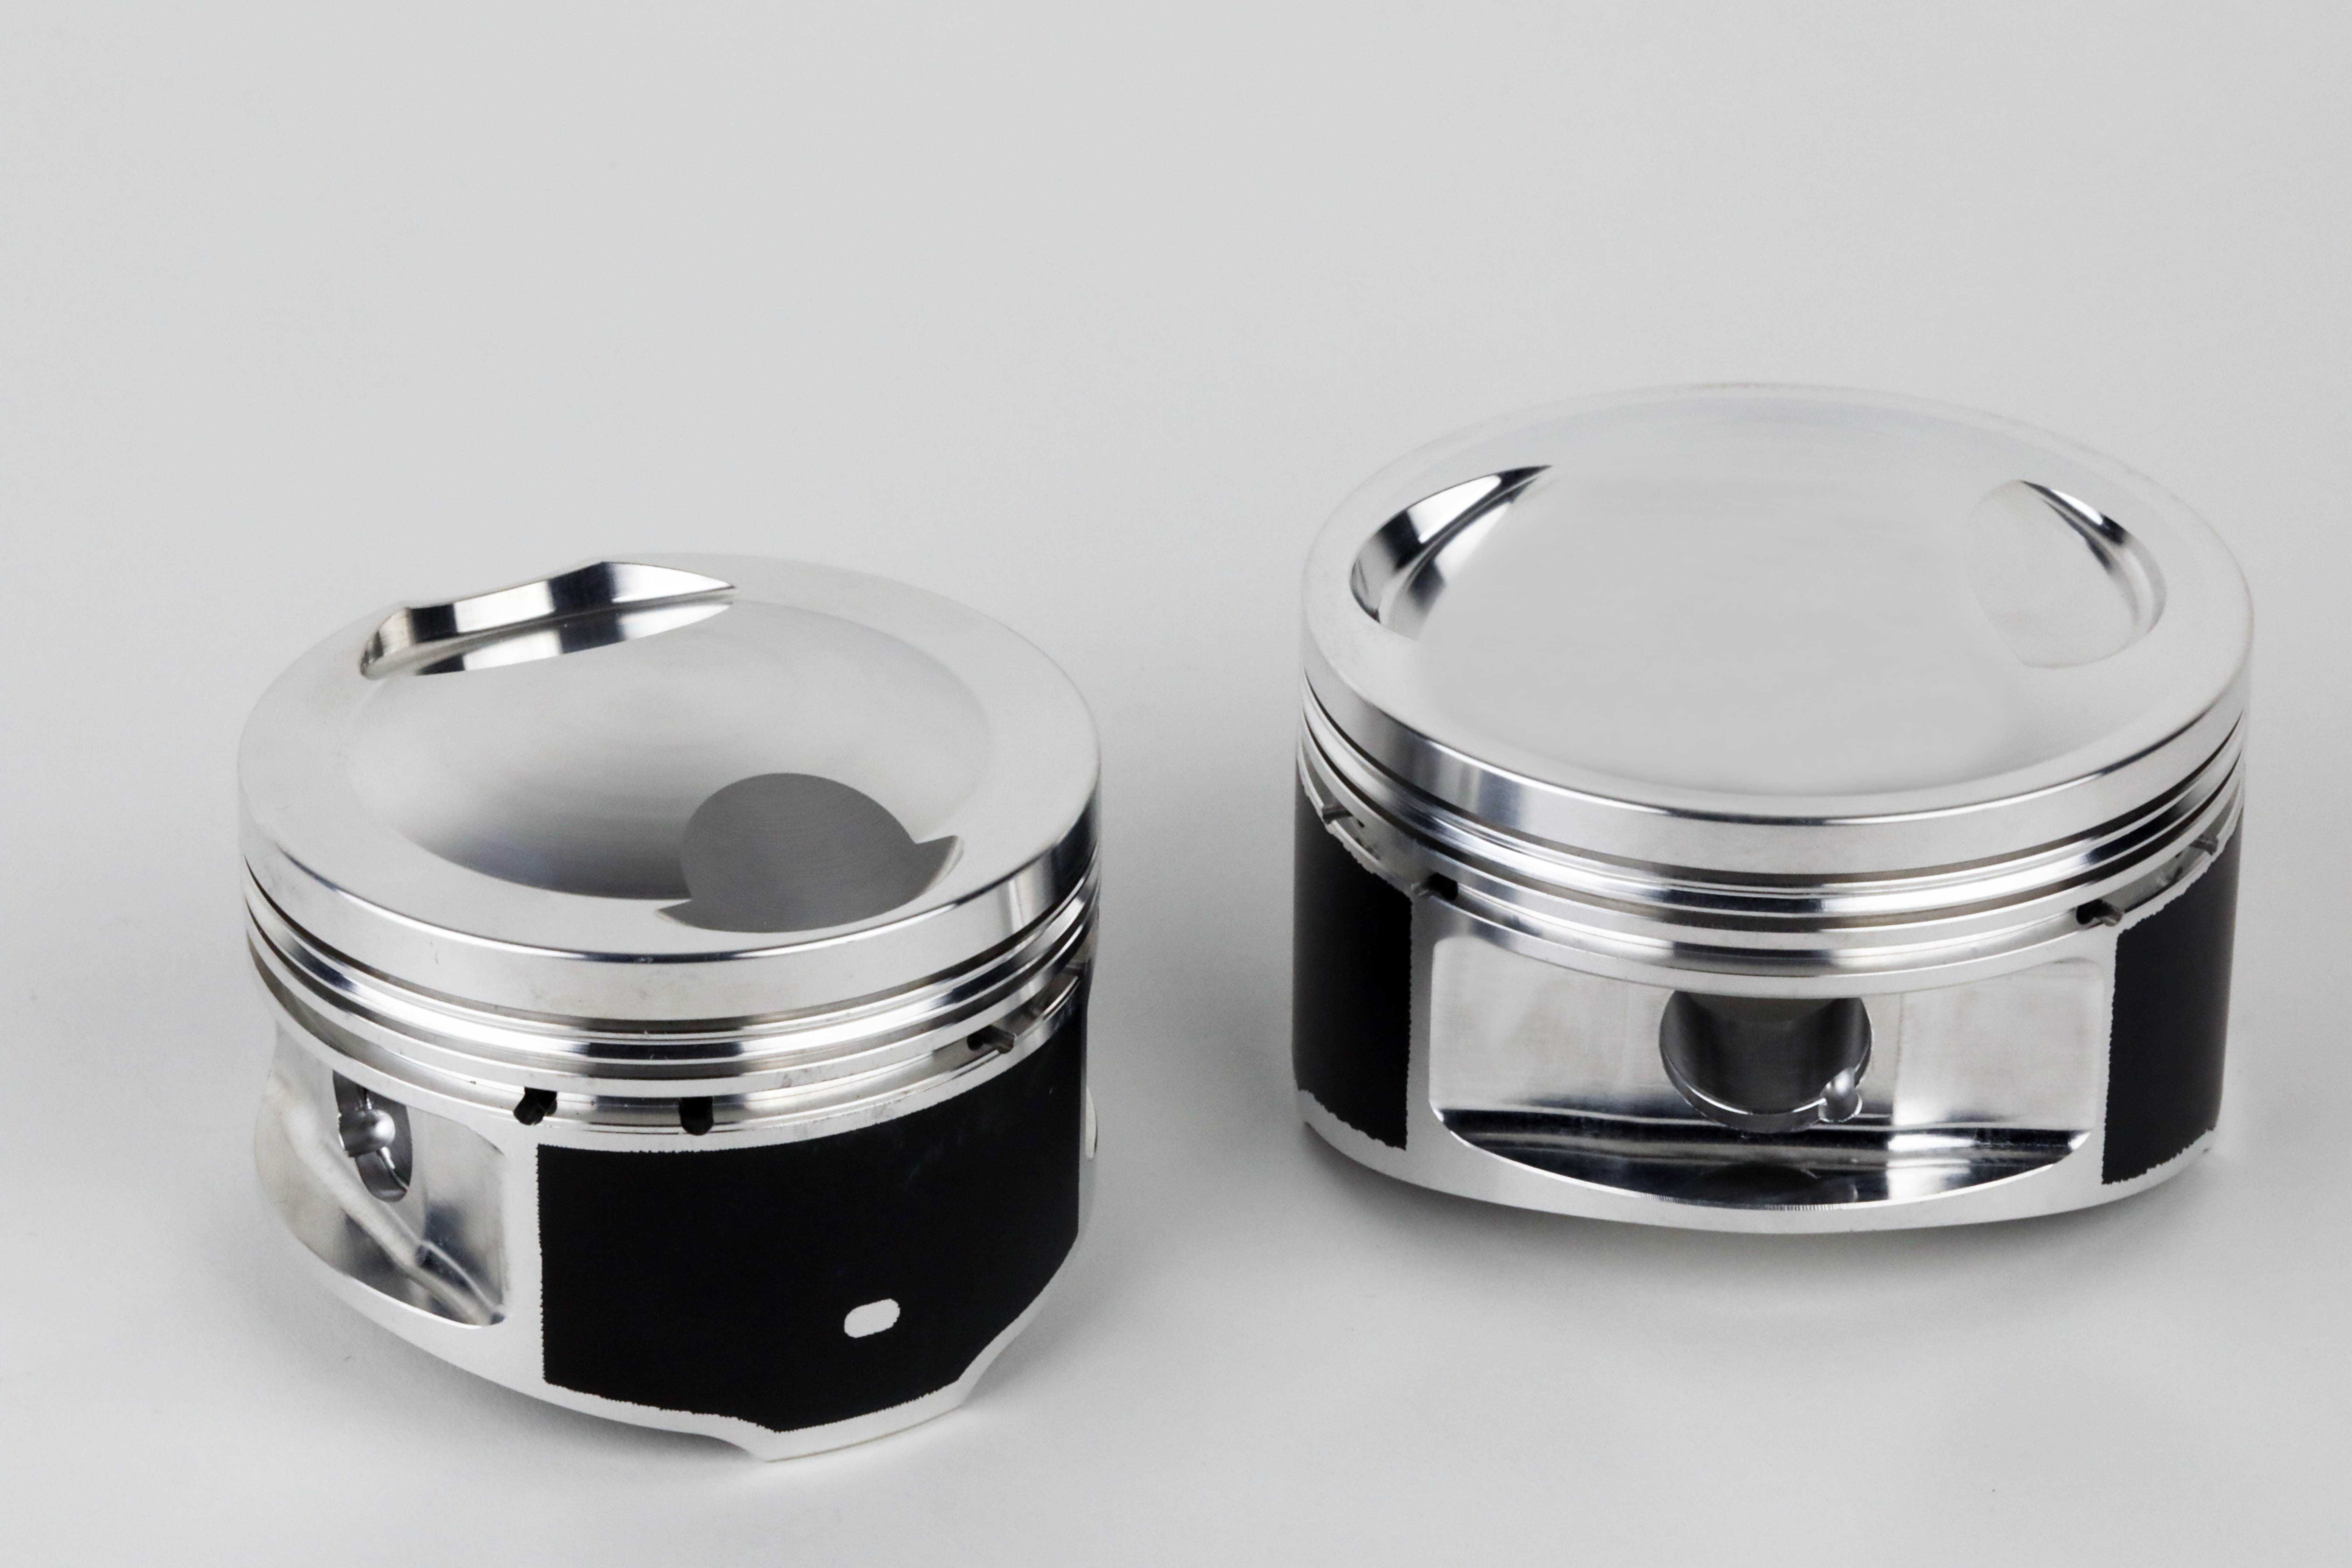 Restoring a Vintage Ferrari? Our new Piston Line Is Here to Help!